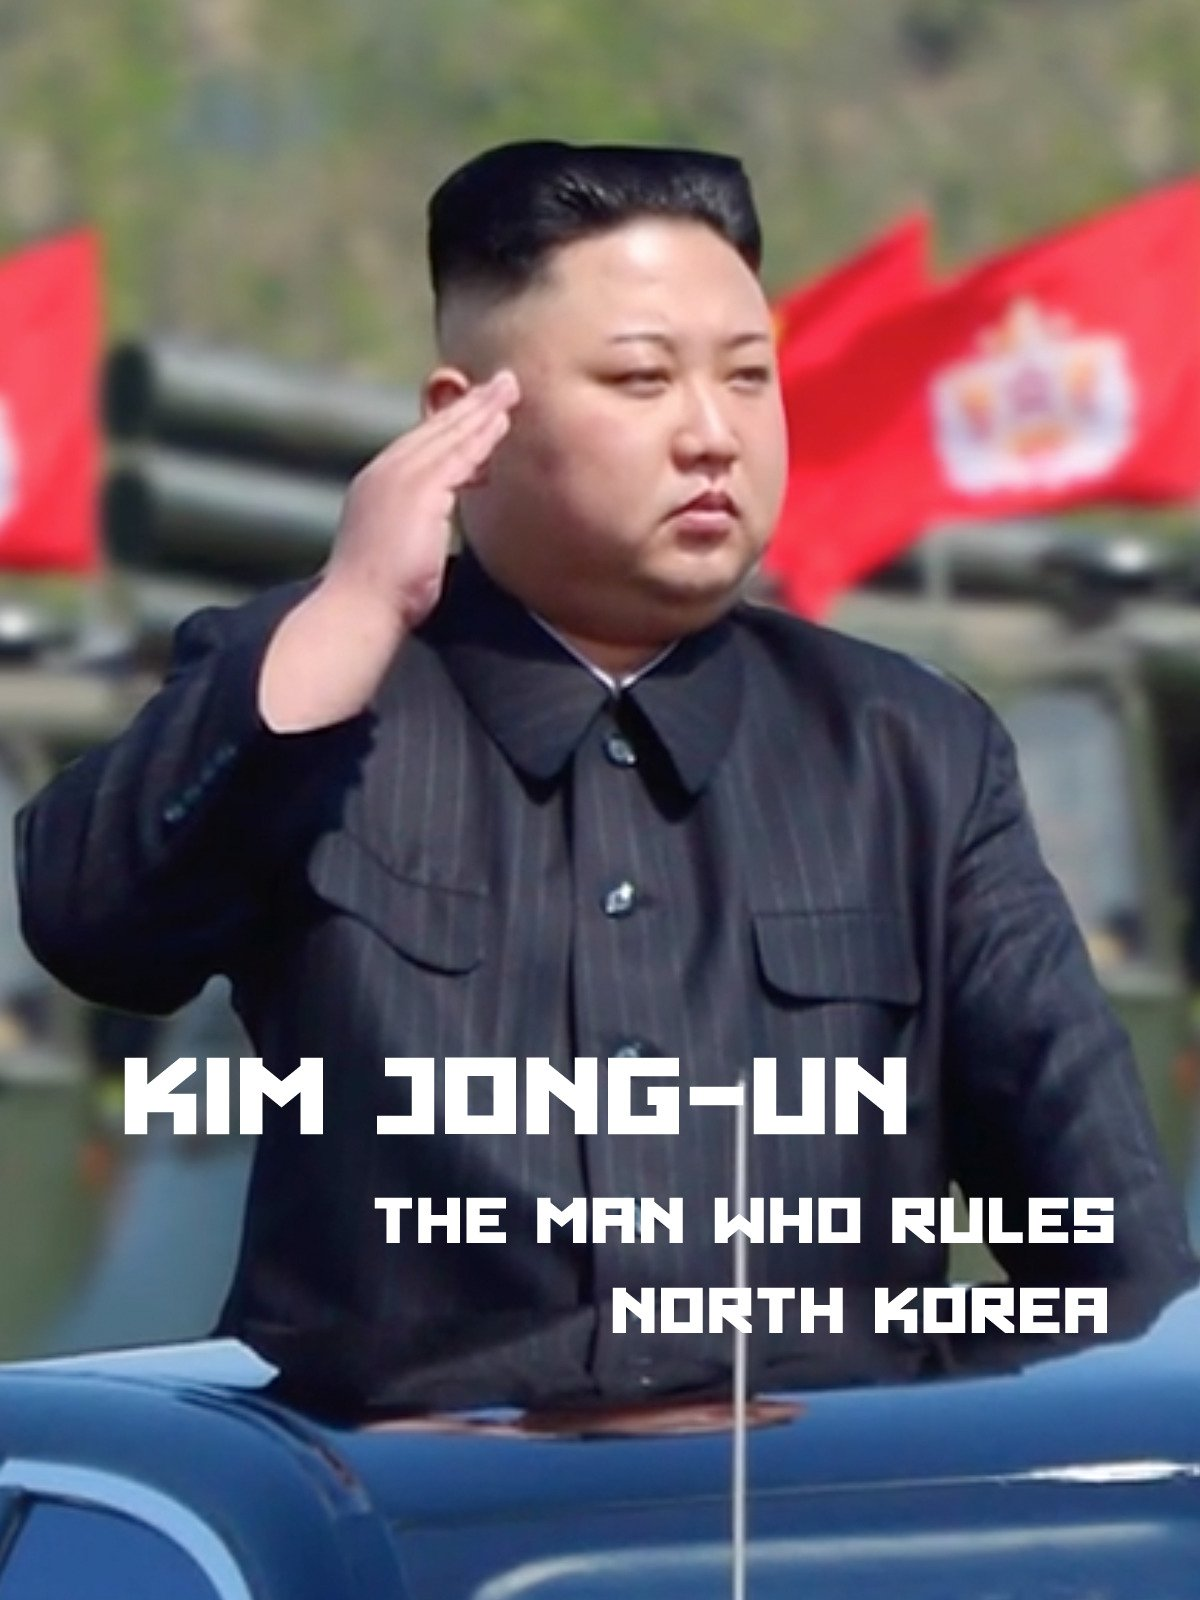 Kim Jong-Un: The Man who rules North Korea